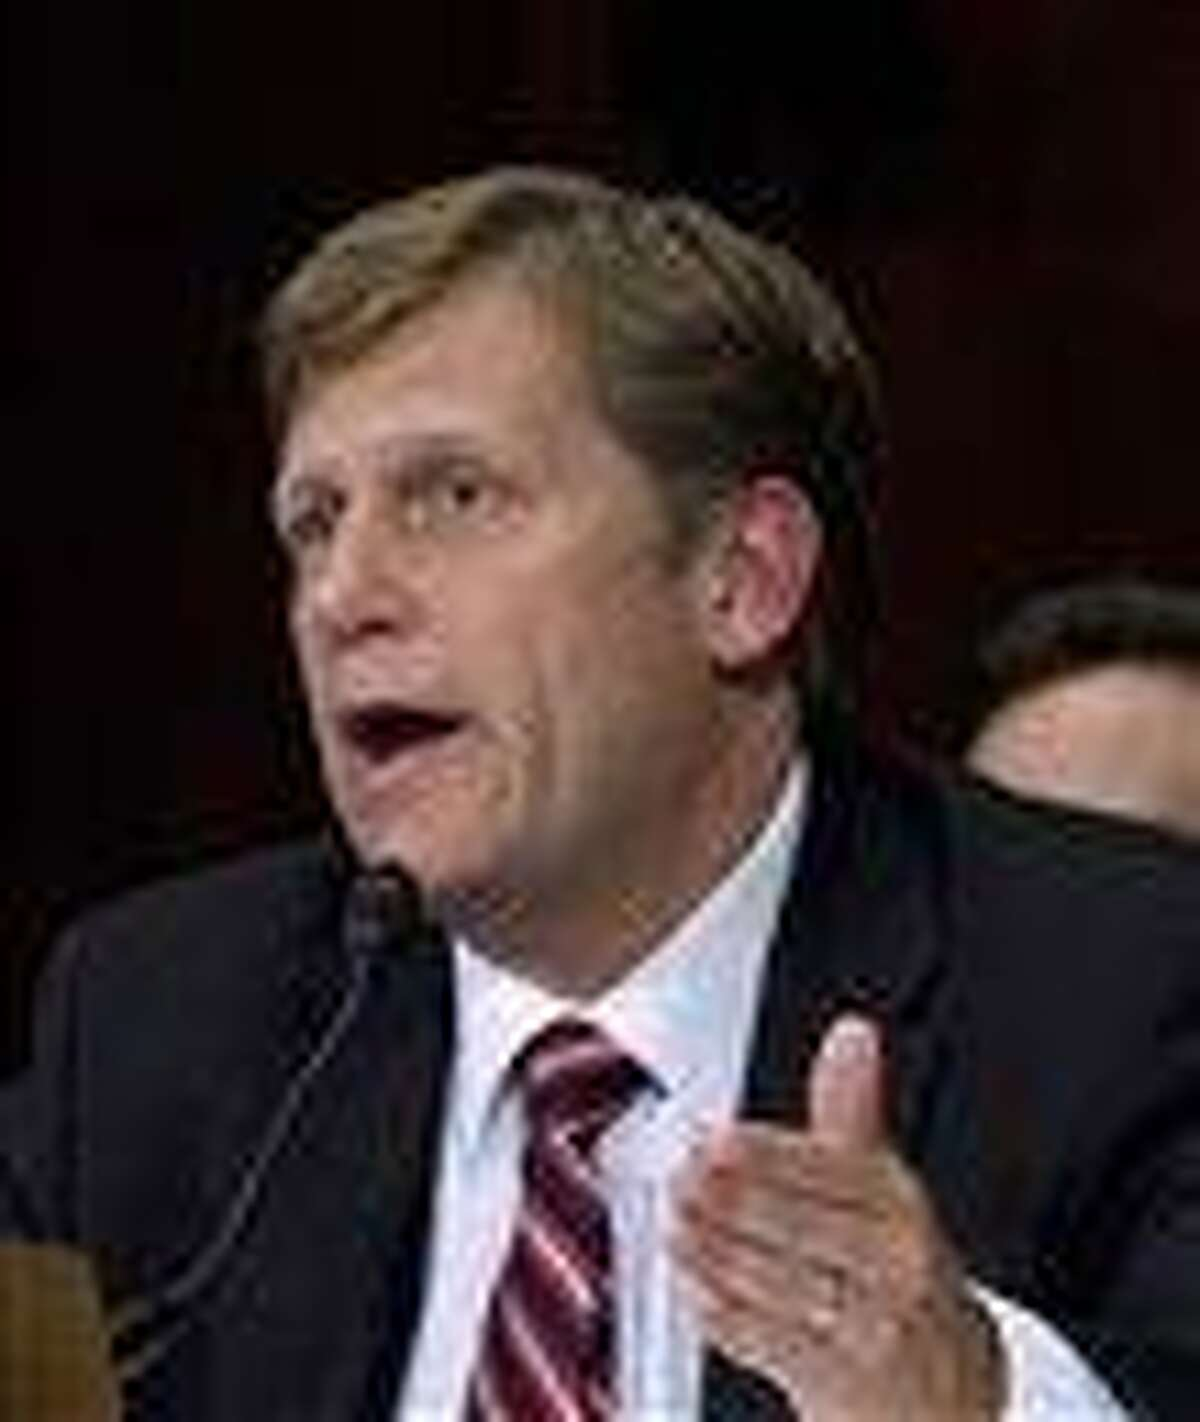 In this 2011 file photo, then-US Ambassador to Russia-nominee Dr. Michael Anthony McFaul testifies on Capitol Hill in Washington. A U.S. official says the Obama administration has complained to Russia about harassment of the American ambassador and will raise concerns about his security. Associated Press